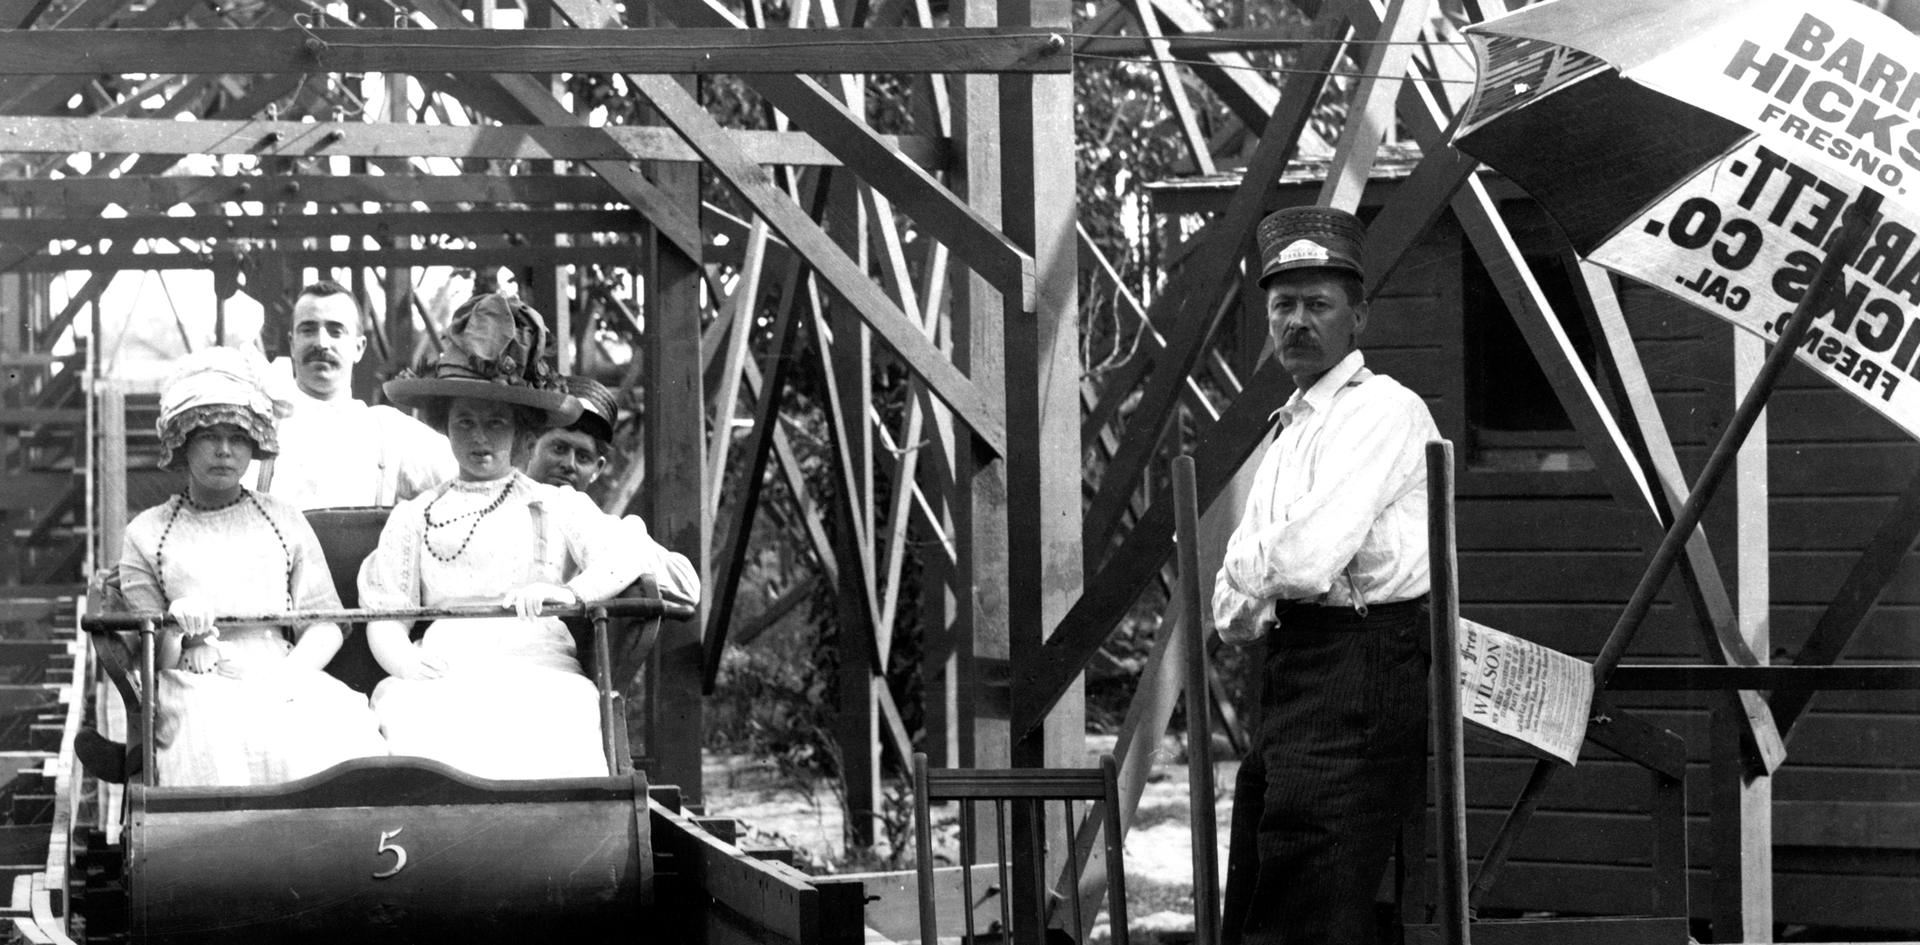 Zapp's Park RollerCoaster- Two park visitors risk their designer millinery aboard Car Number 5 while hurtling through afternoon skies on Zapp's rickety wooden roller coaster – circa 1911. Taken by Pop Laval.